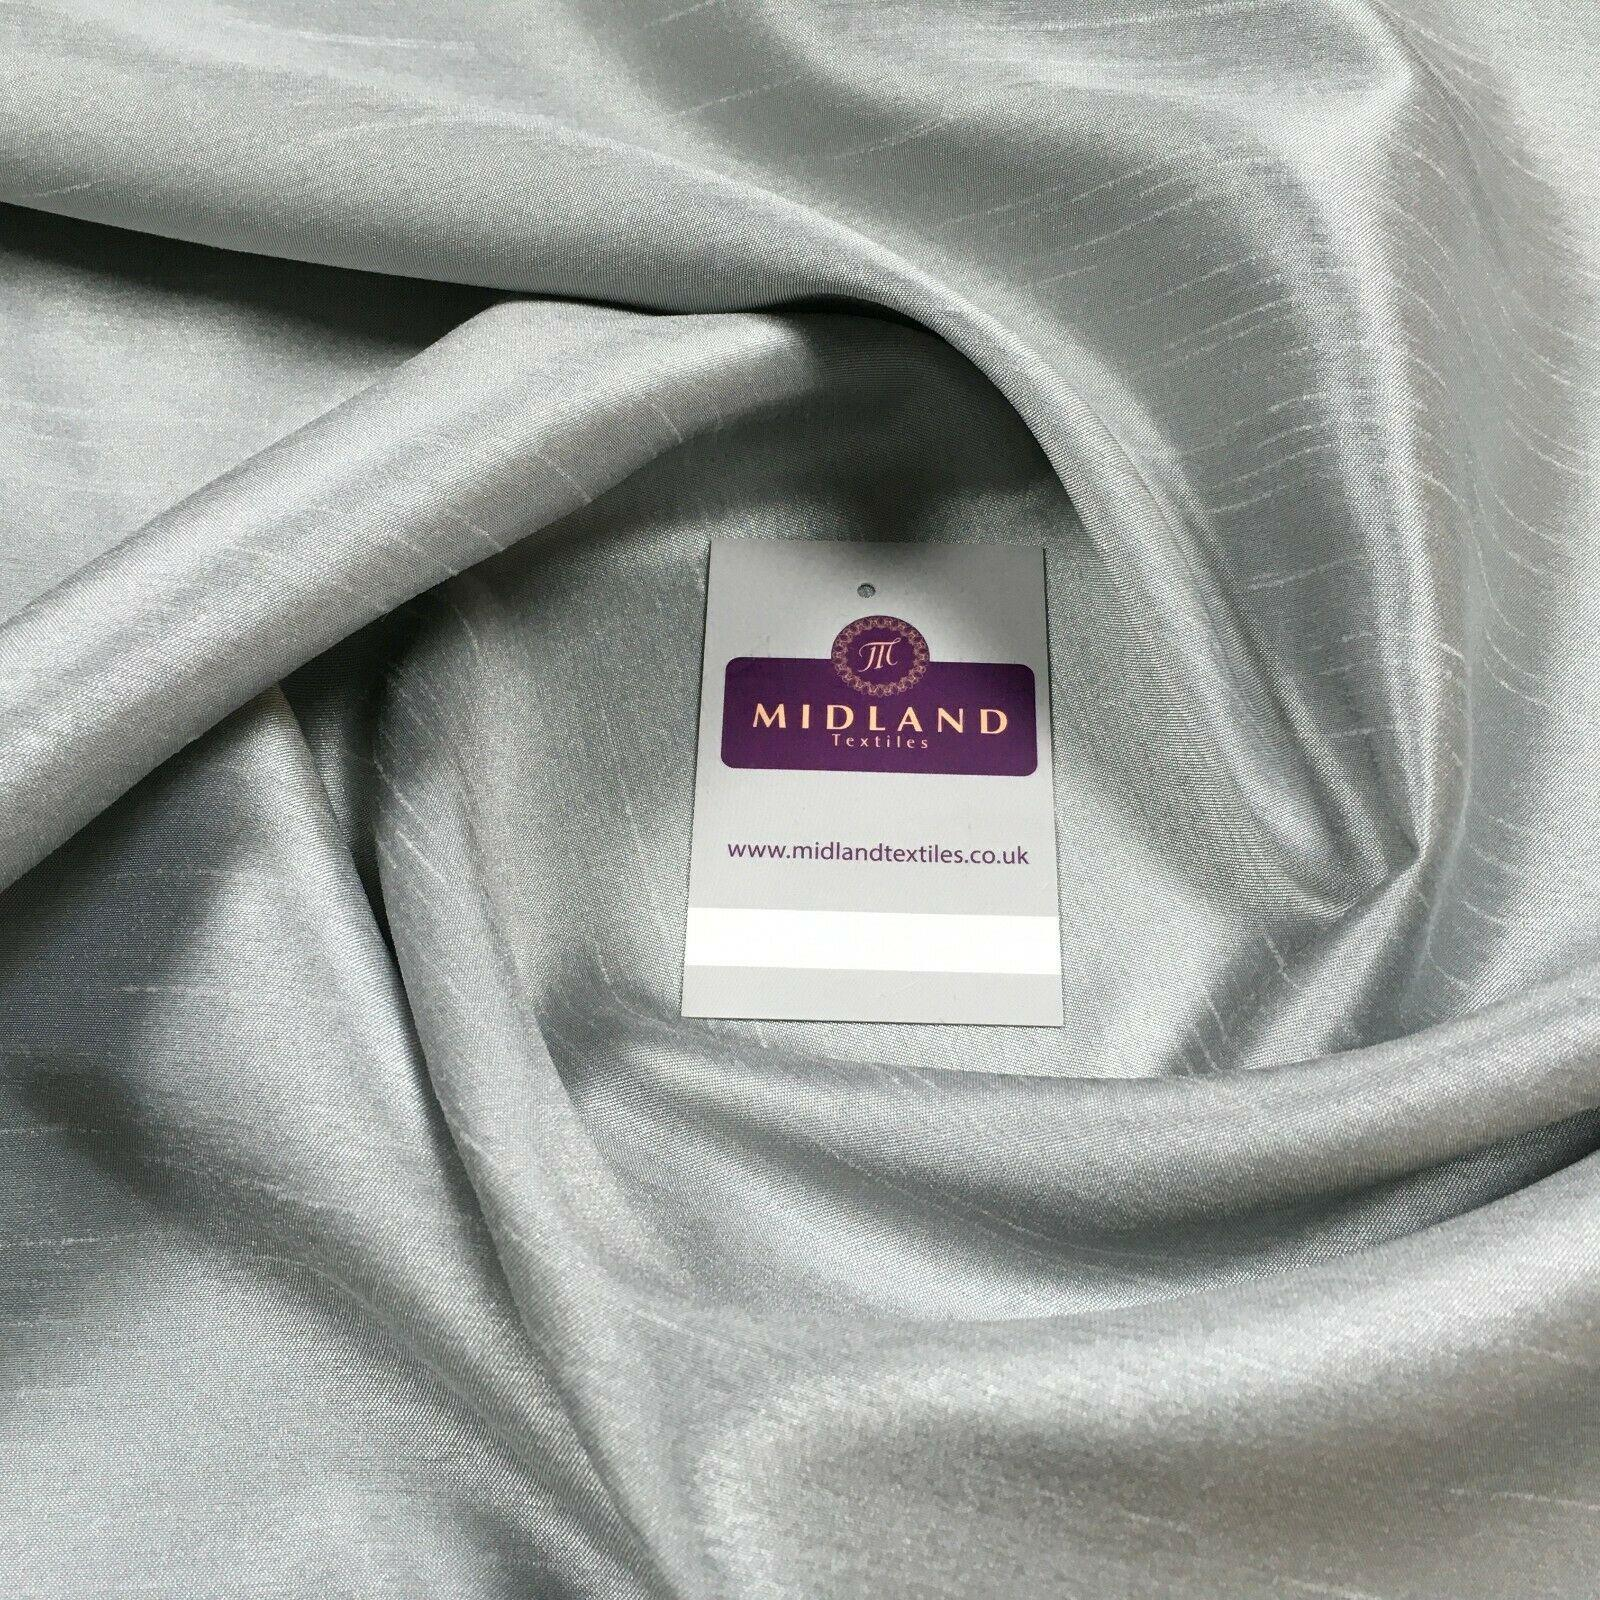 Plain Shantung Satin Backed Dupion Faux Silk Dress Fabric 147 cm MD1293 Mtex